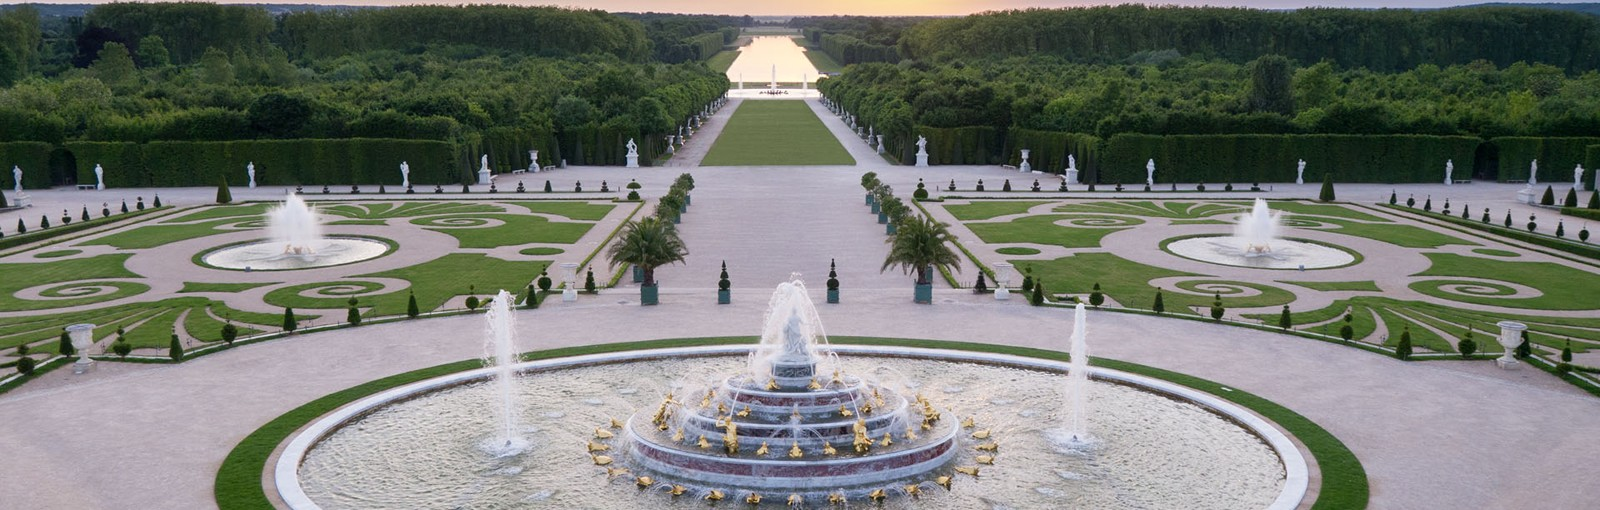 Tours Versailles half day tour - Half days - Day tours from Paris